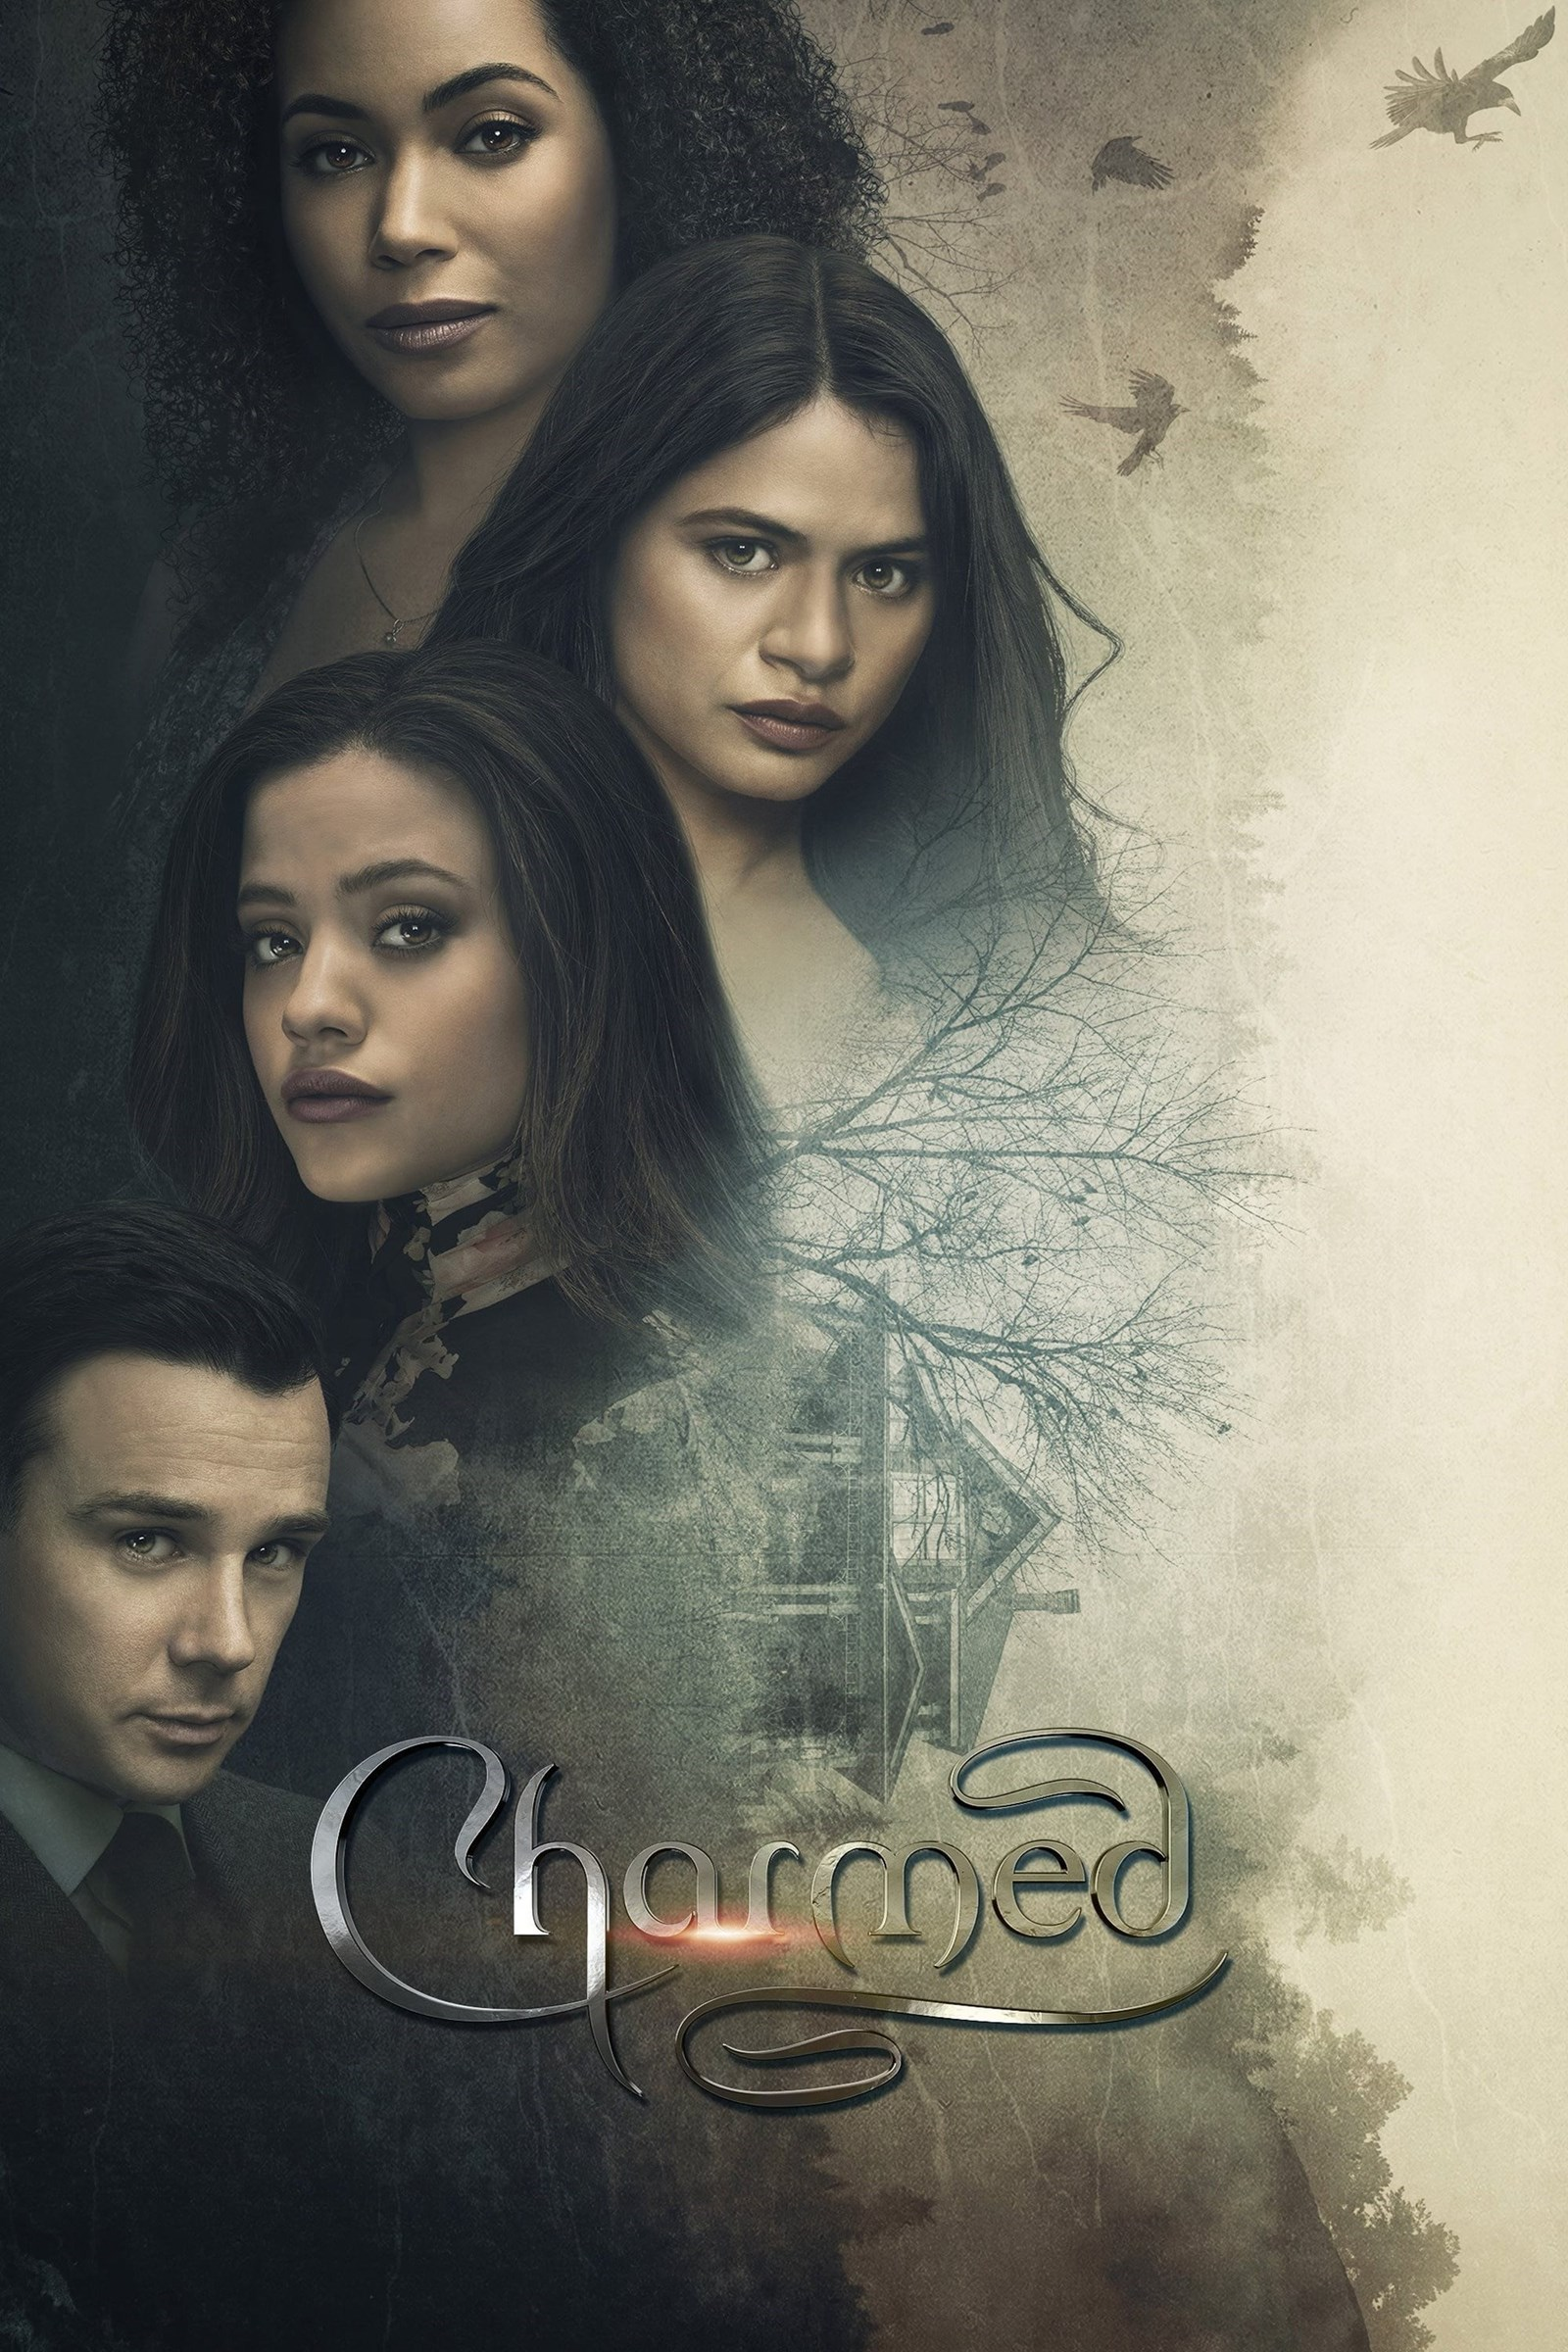 https://i.jeded.com/i/charmed-second-season-2019.166756.jpg